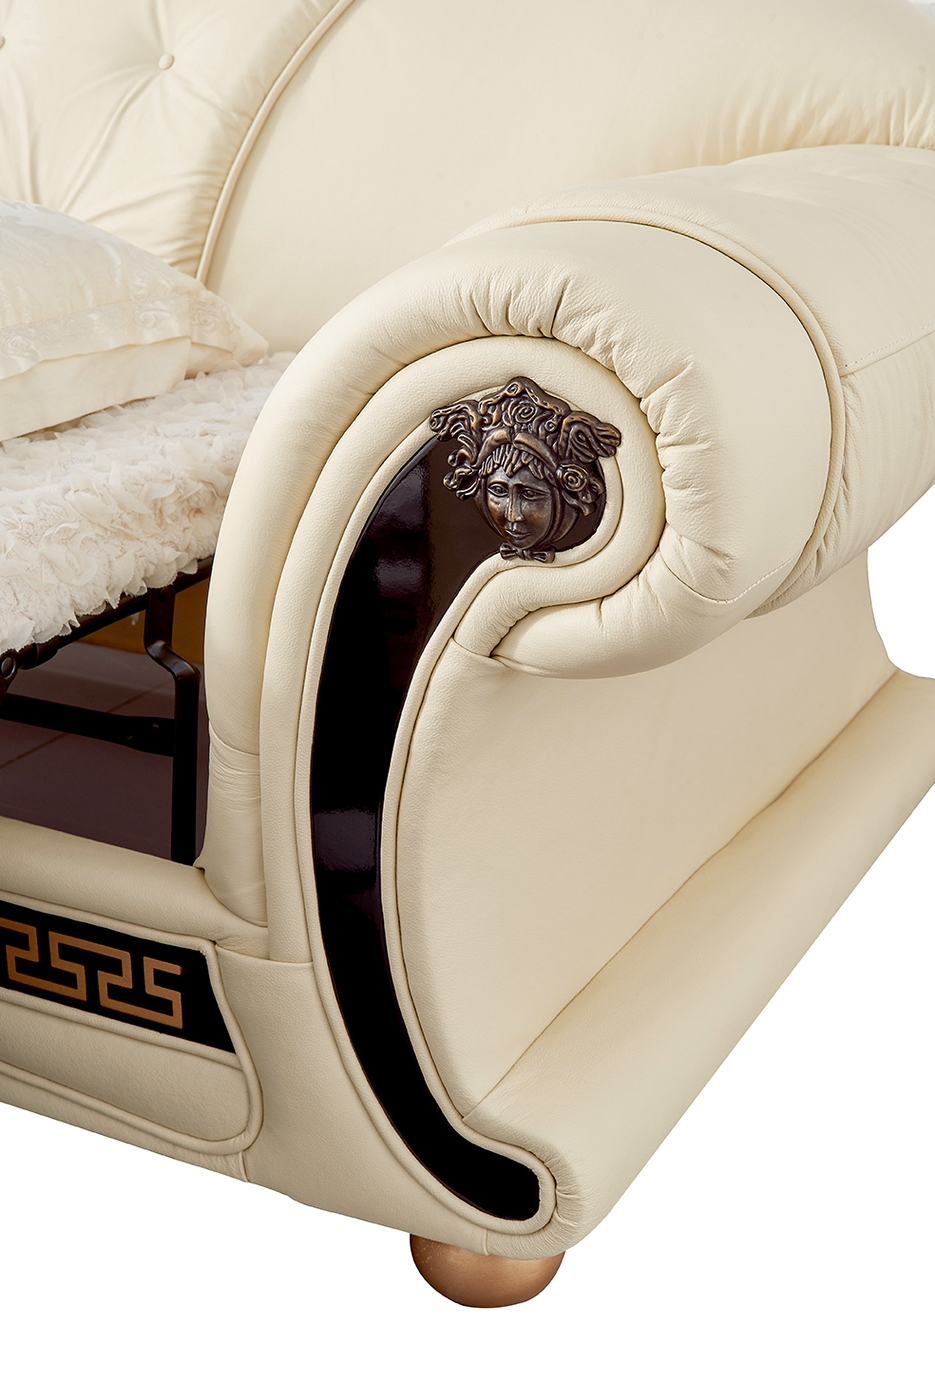 Versace Luxury Button Tufted Ivory Italian Leather Pull